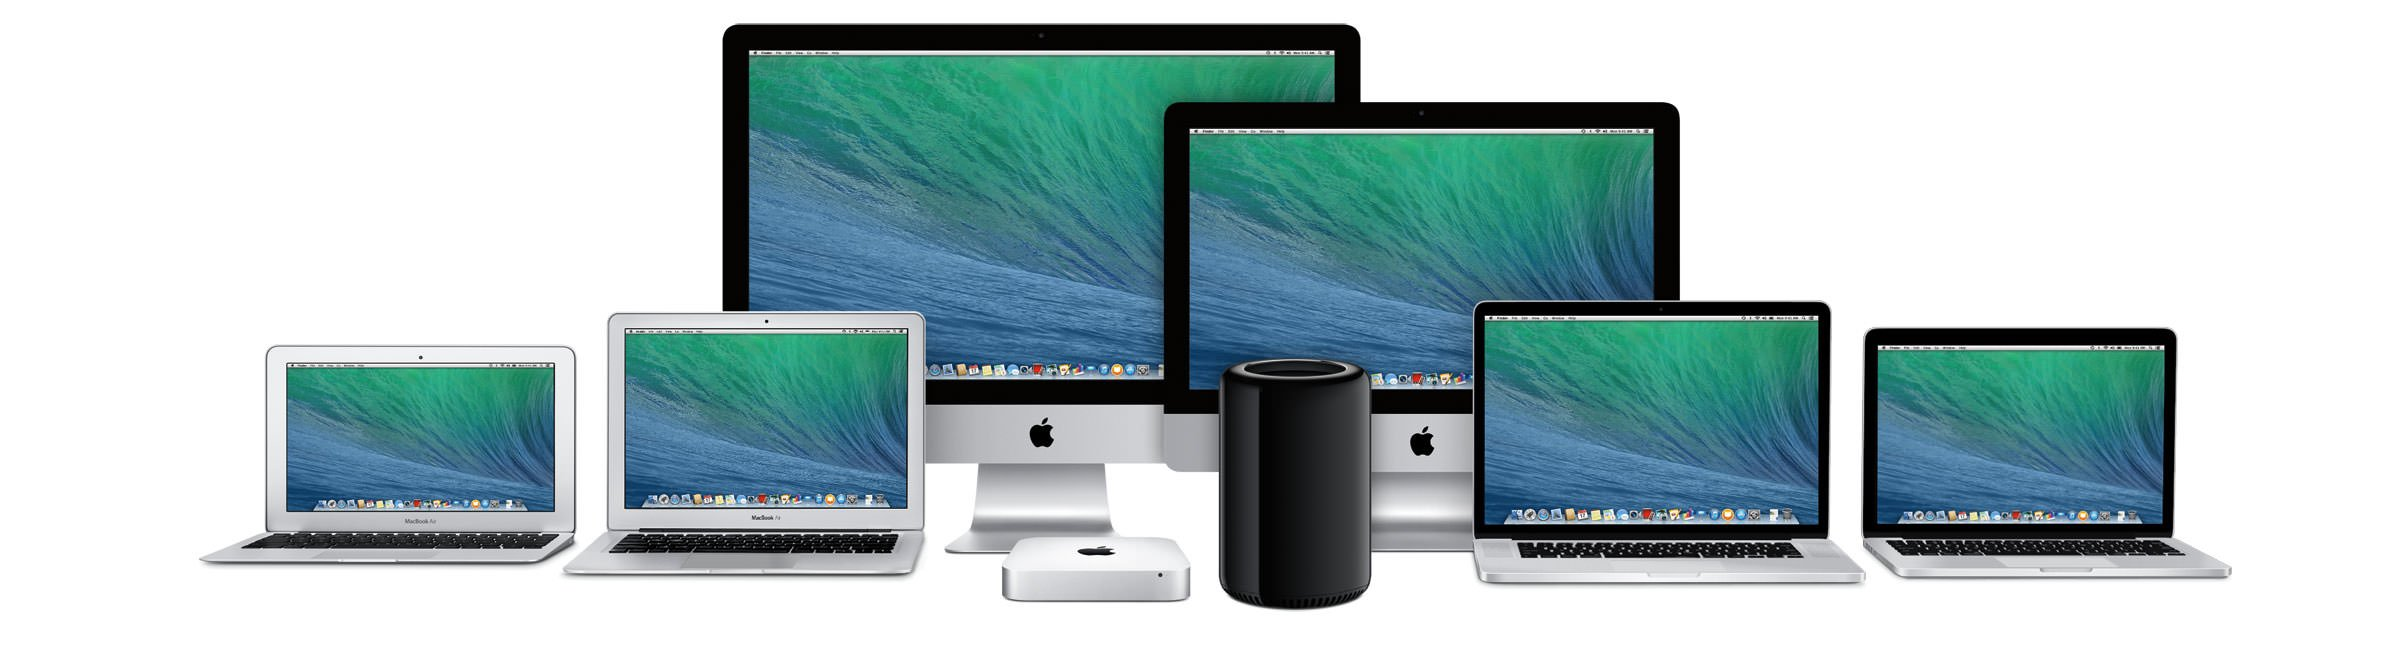 alle apple mac apparaten